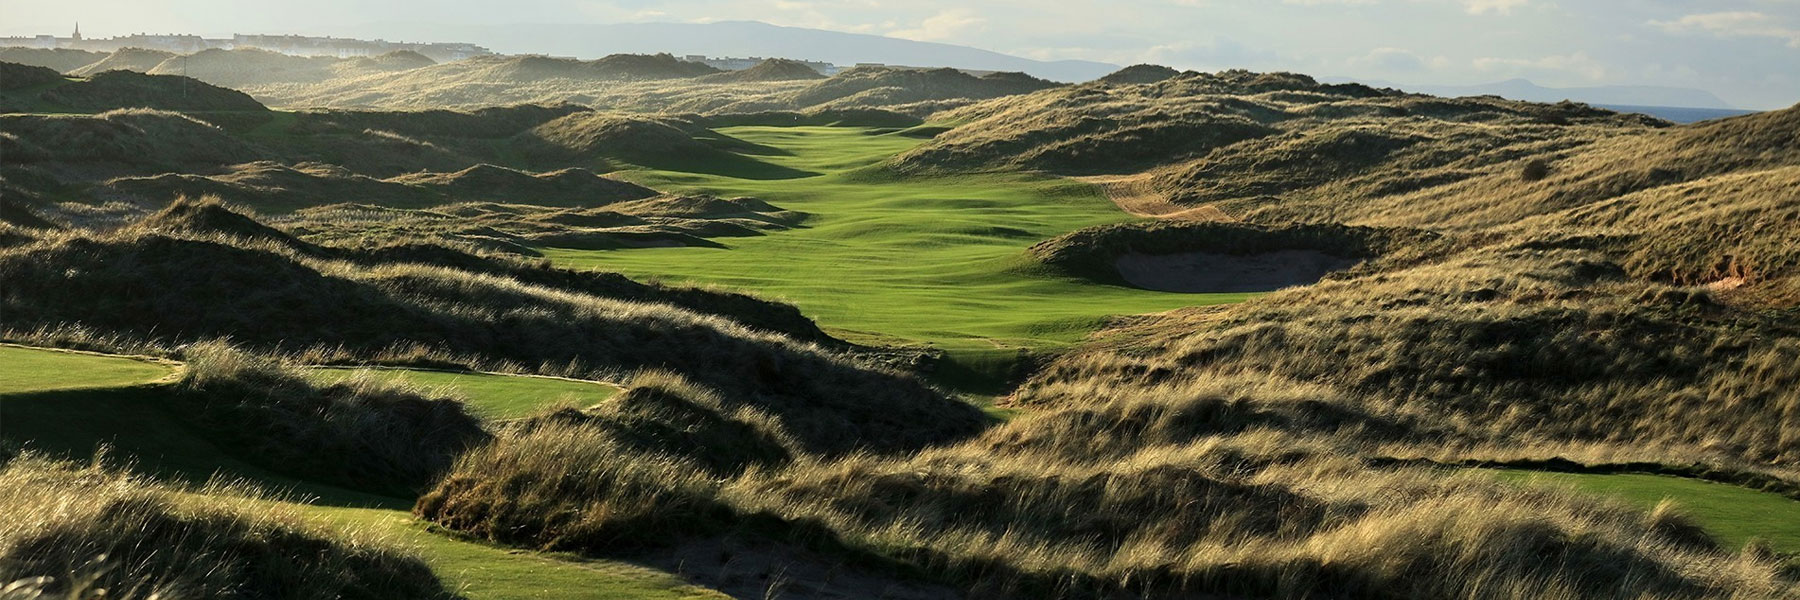 Ireland Golf Vacation Packages